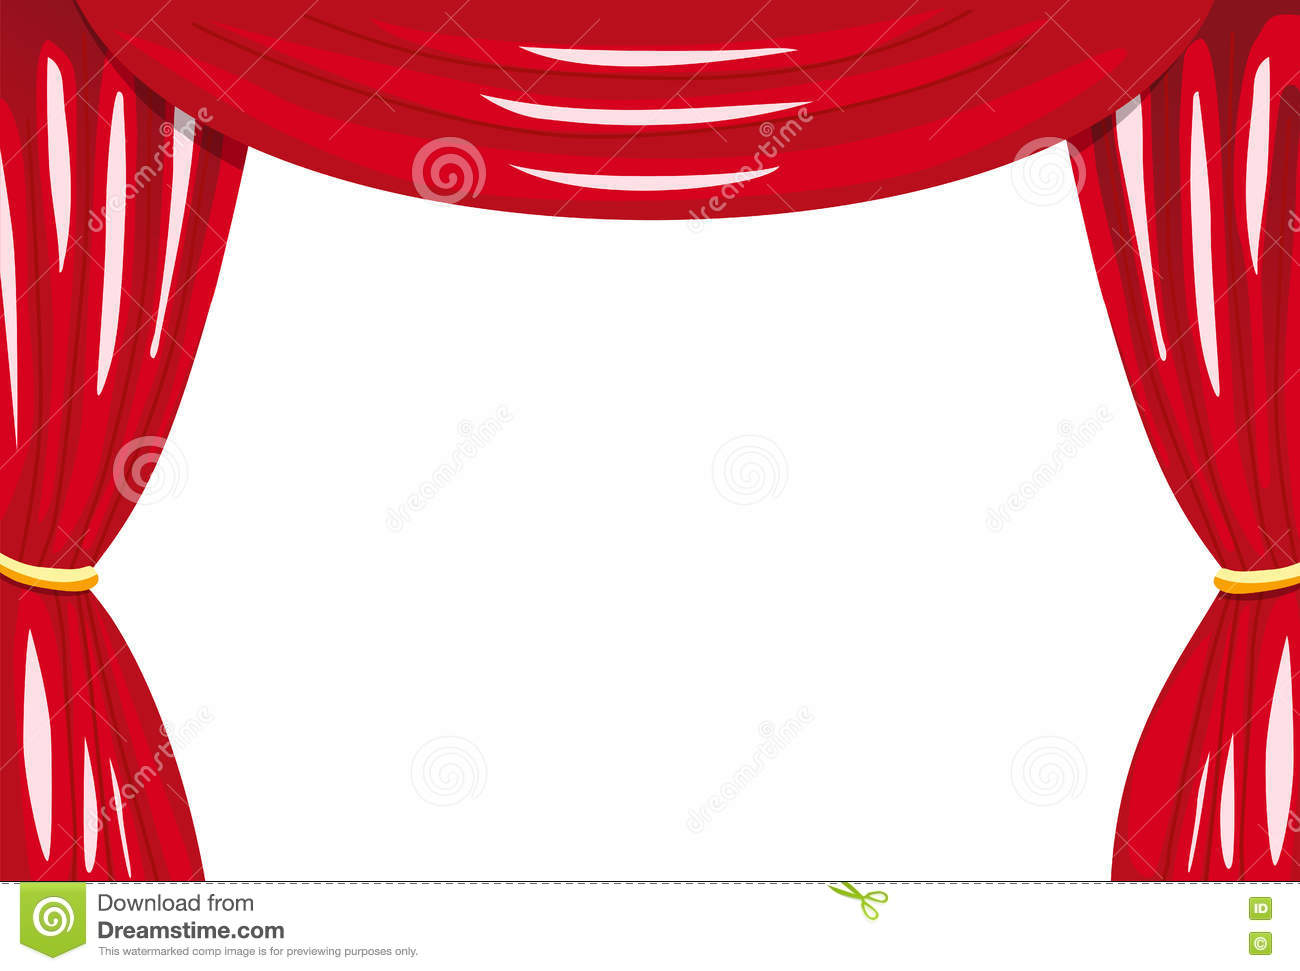 Open theater drapes or stage curtains royalty free stock image image - Royalty Free Vector Curtains Open Red Stage White Drapes Retro Curtain Theater